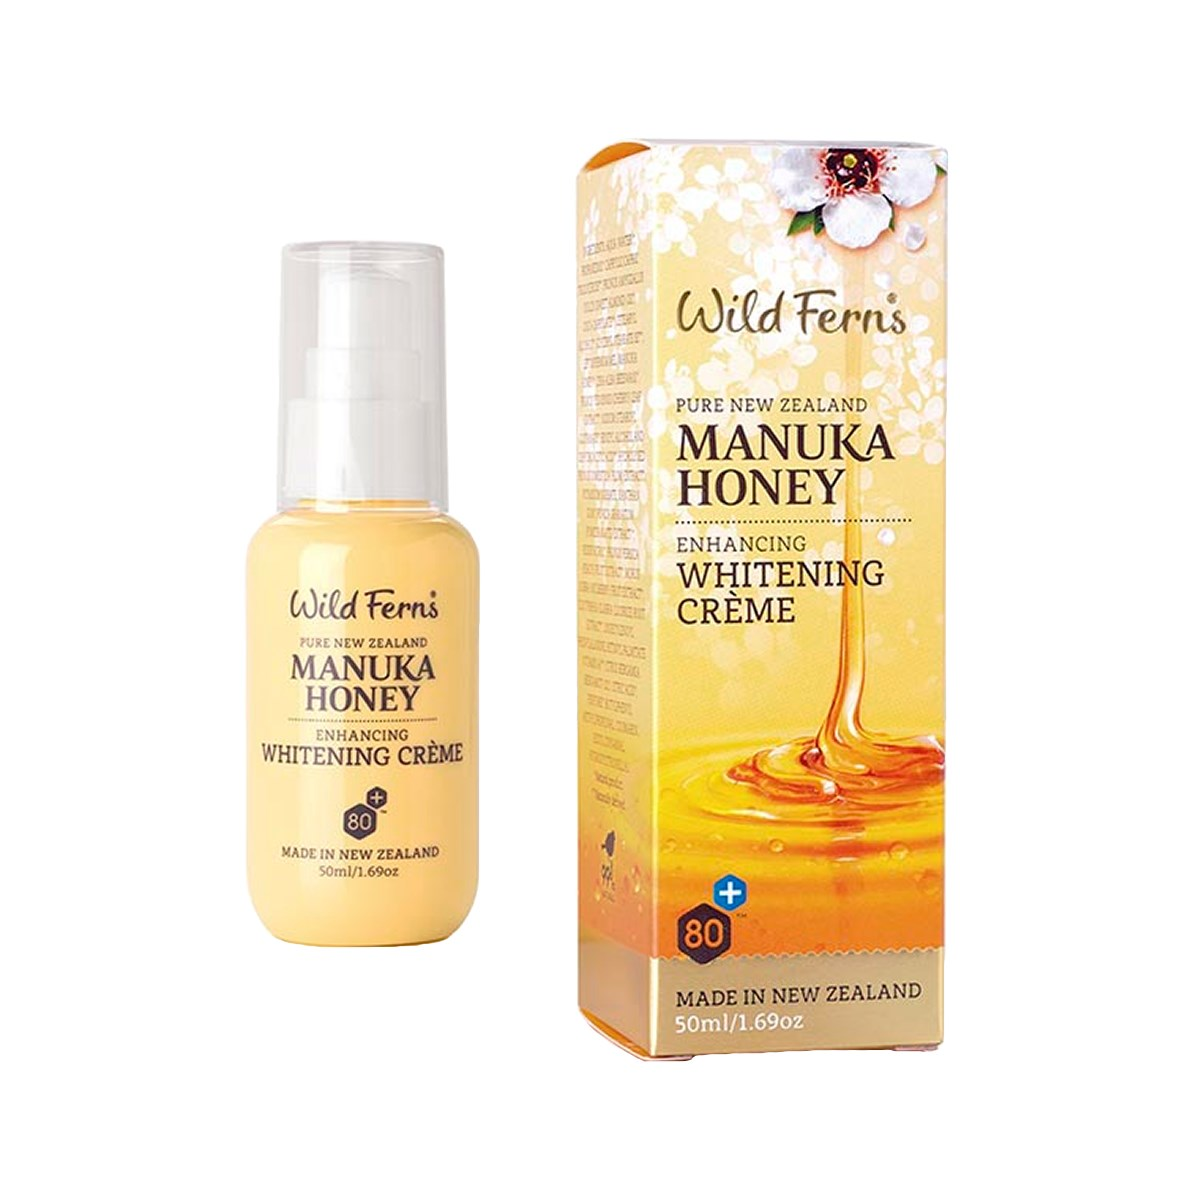 Wild Ferns Manuka Honey Enhancing Whitening Creme